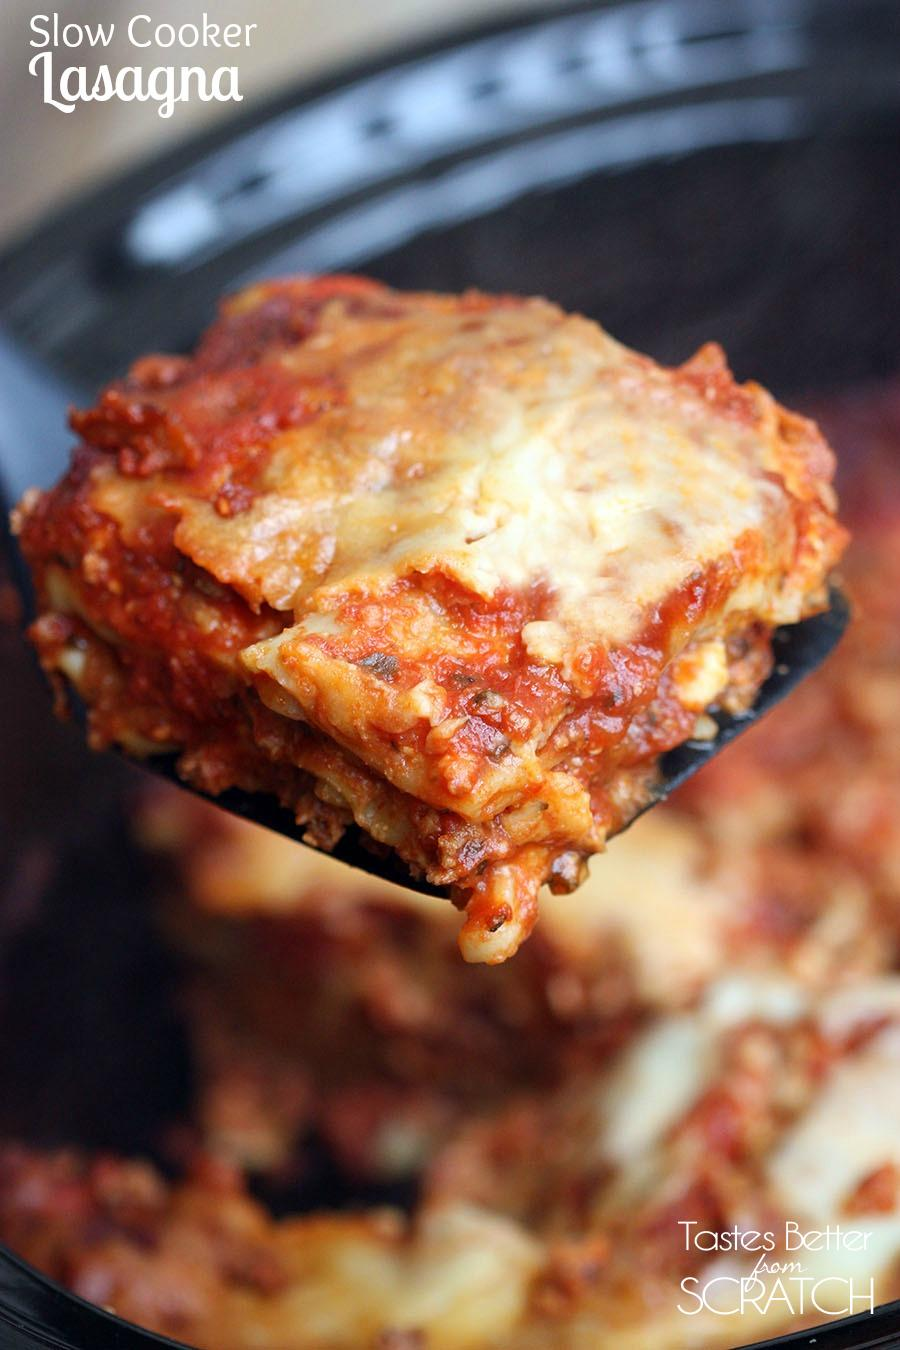 Slow_Cooker_Lasagna1